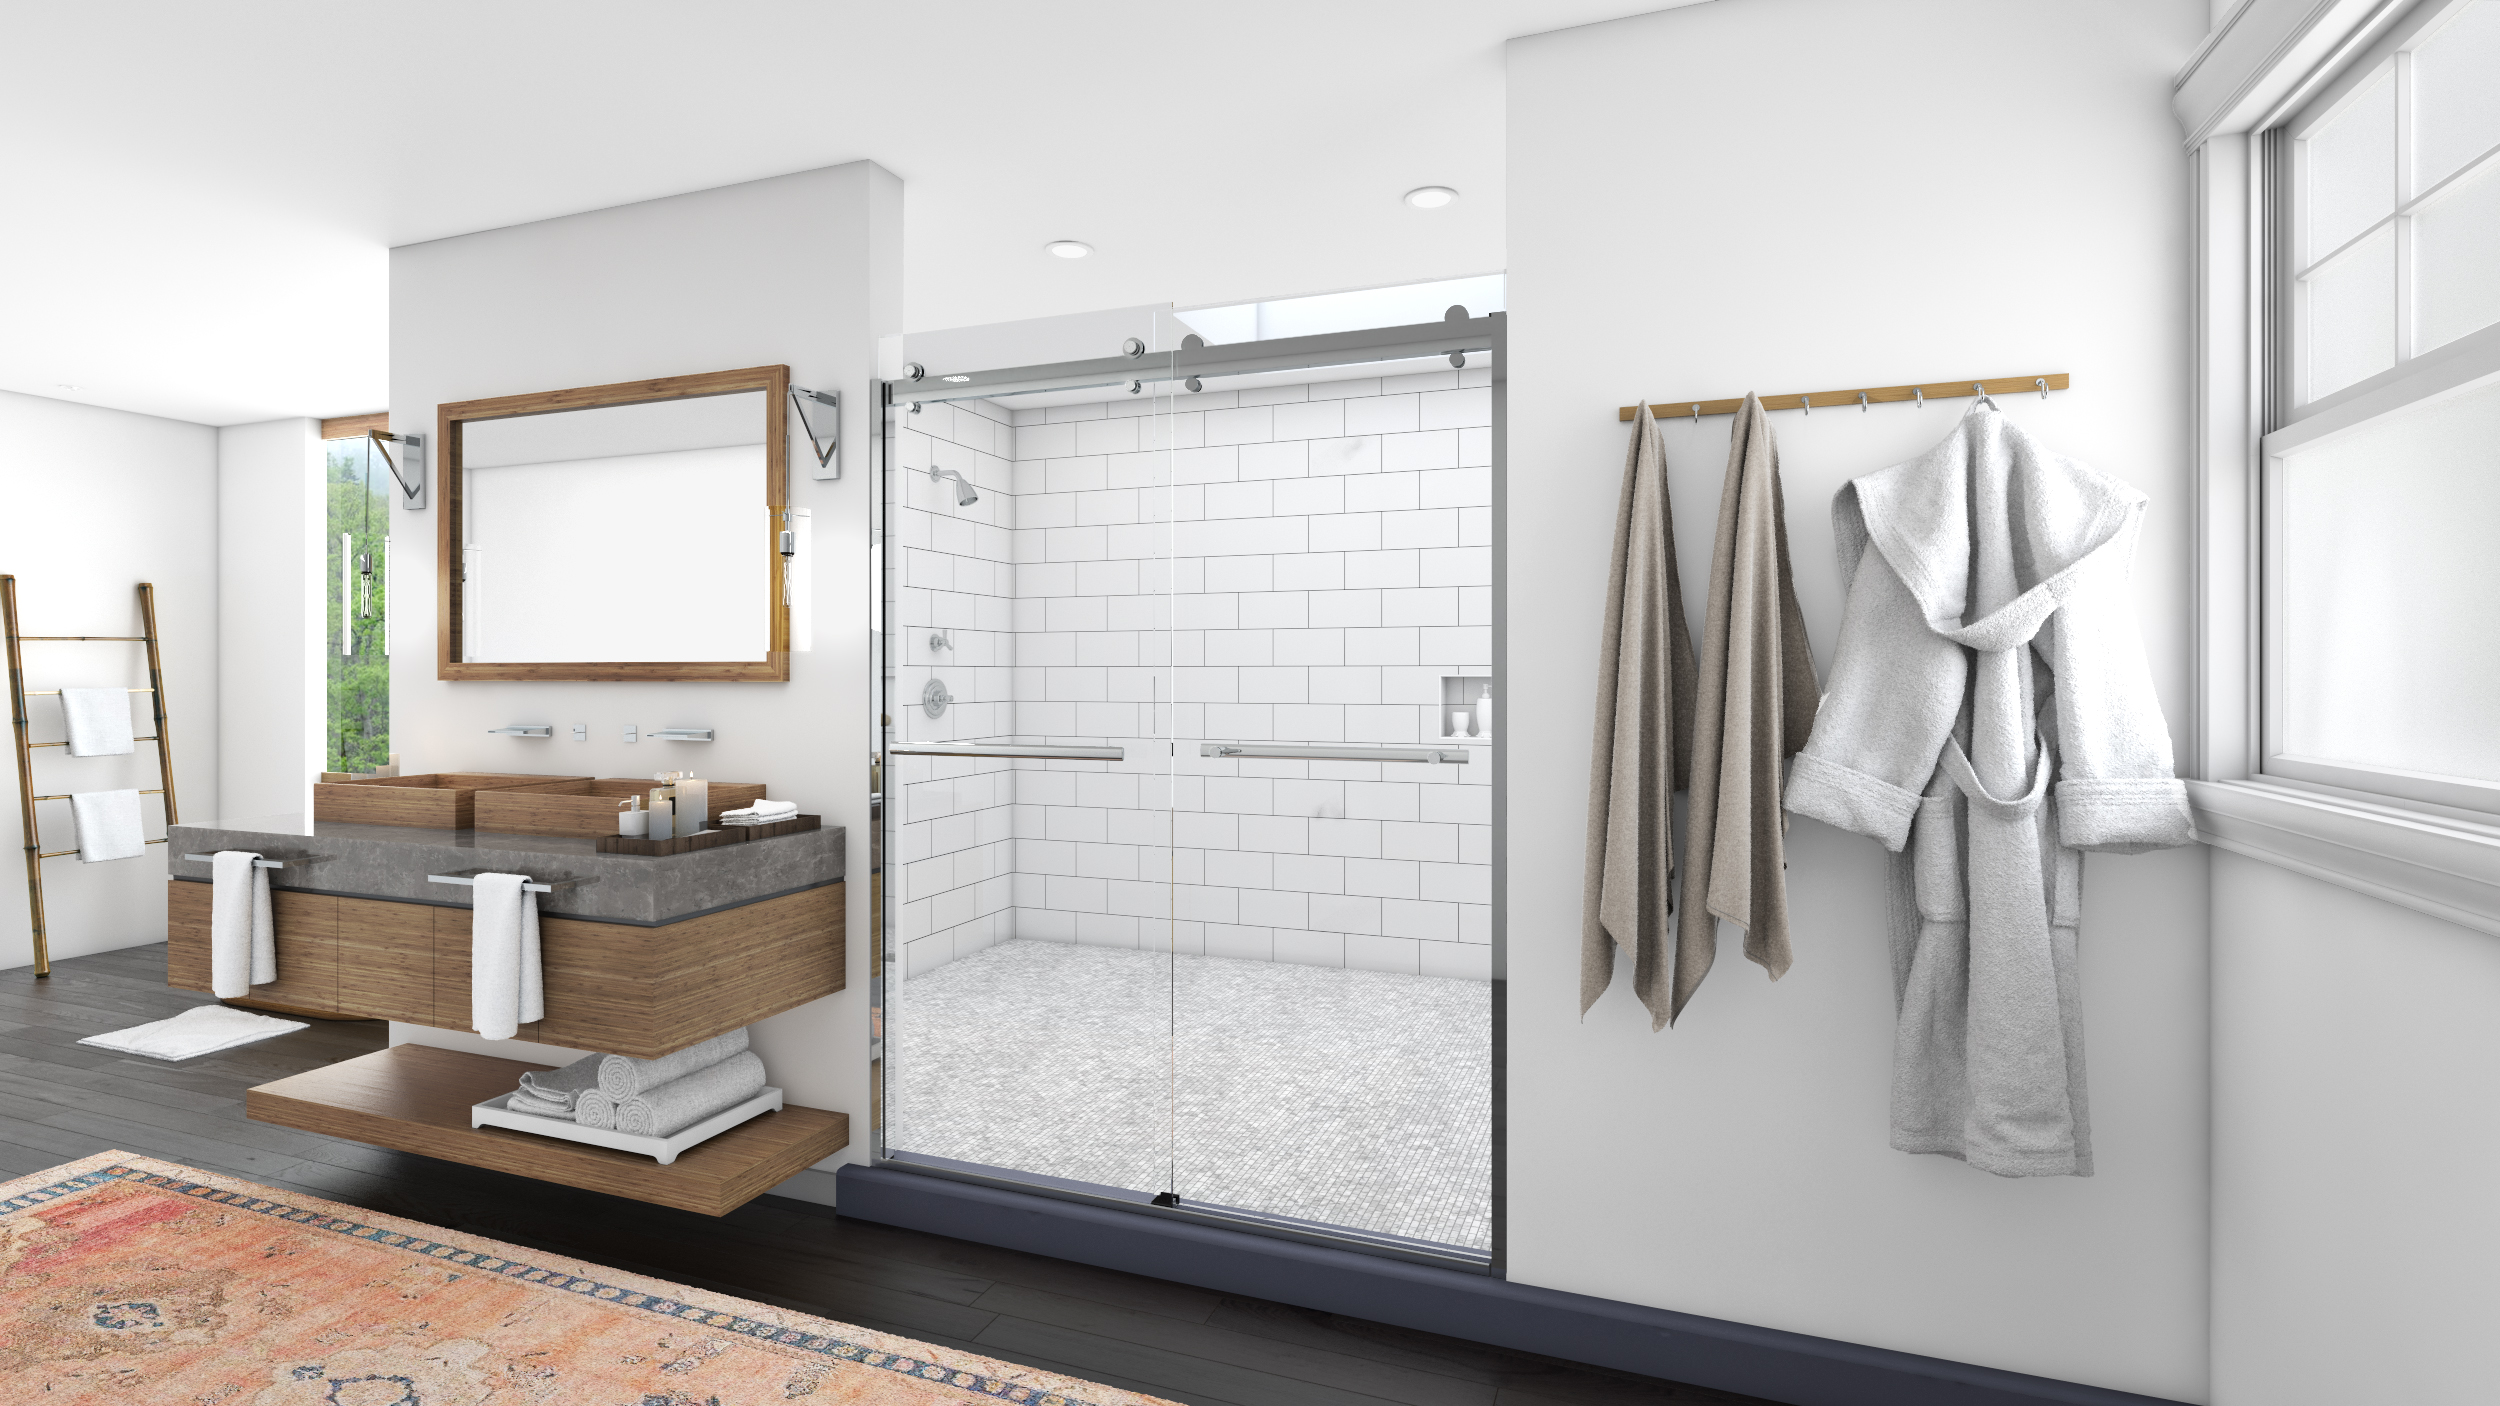 The first shower glass protectant powered by Microban